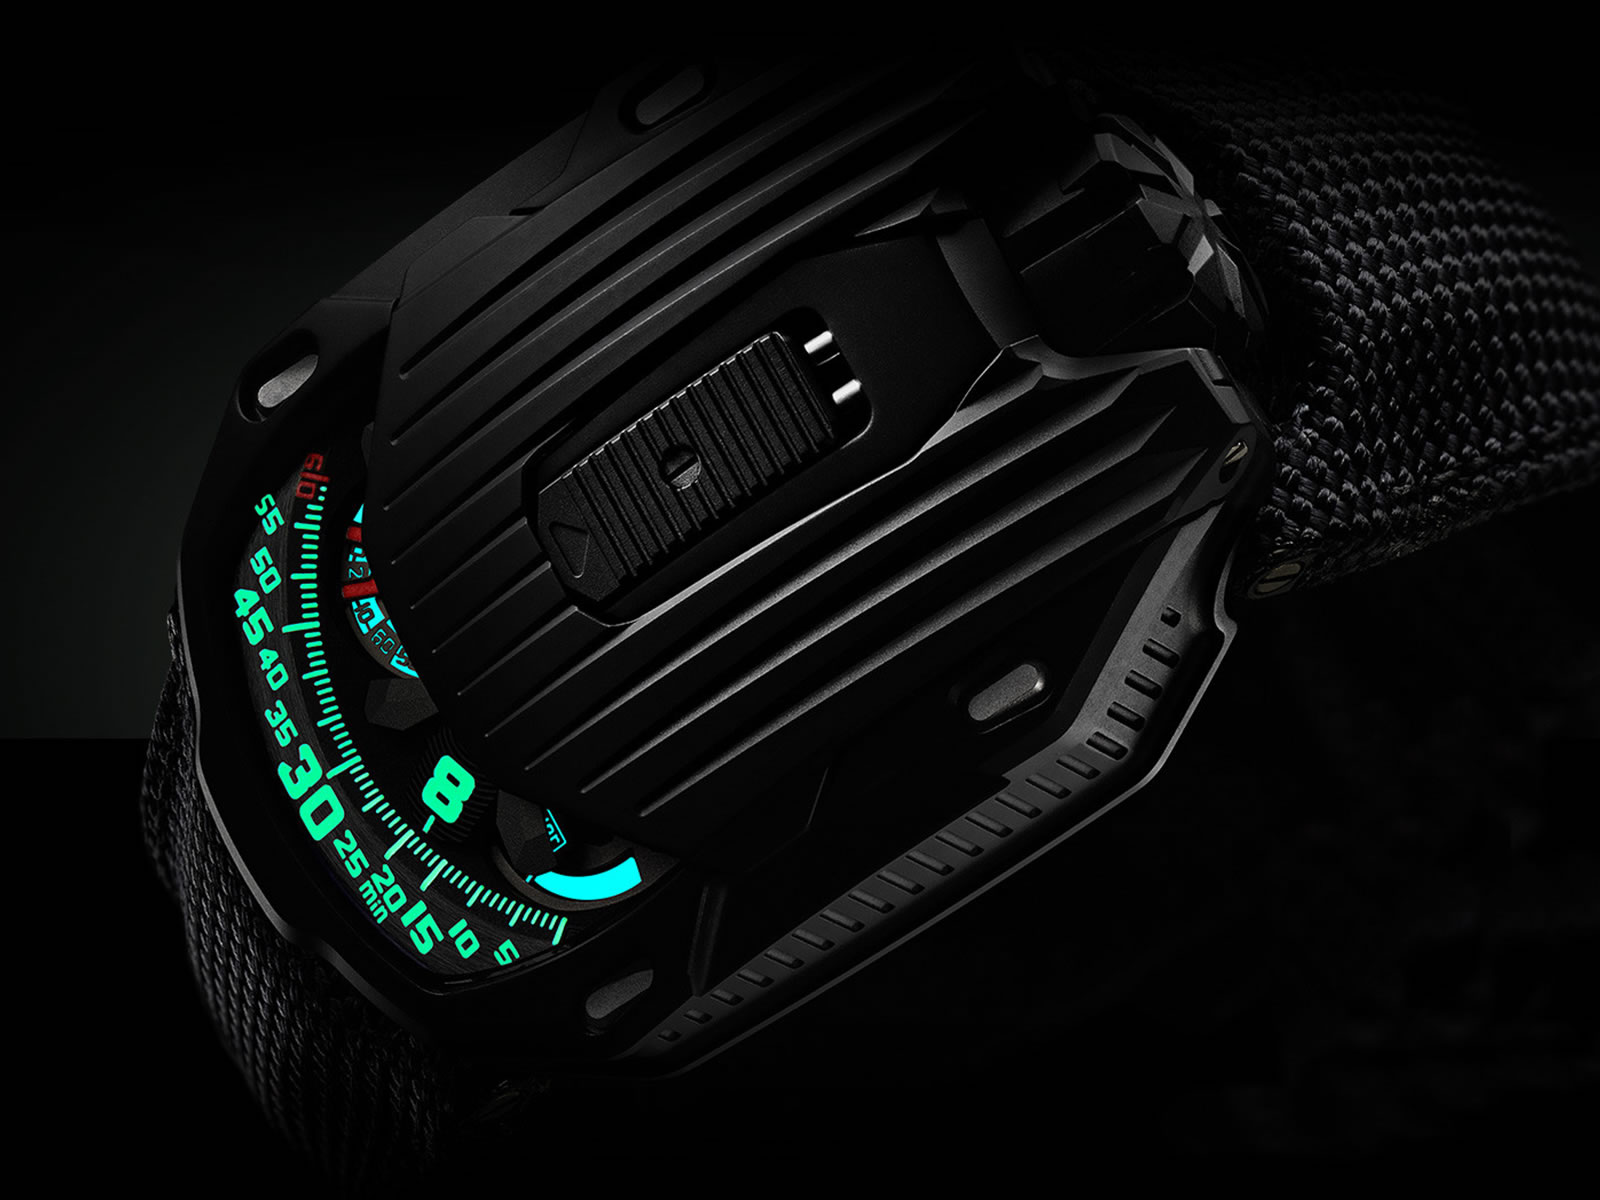 urwerk-ur-105-ct-kryptonite-4-.jpg